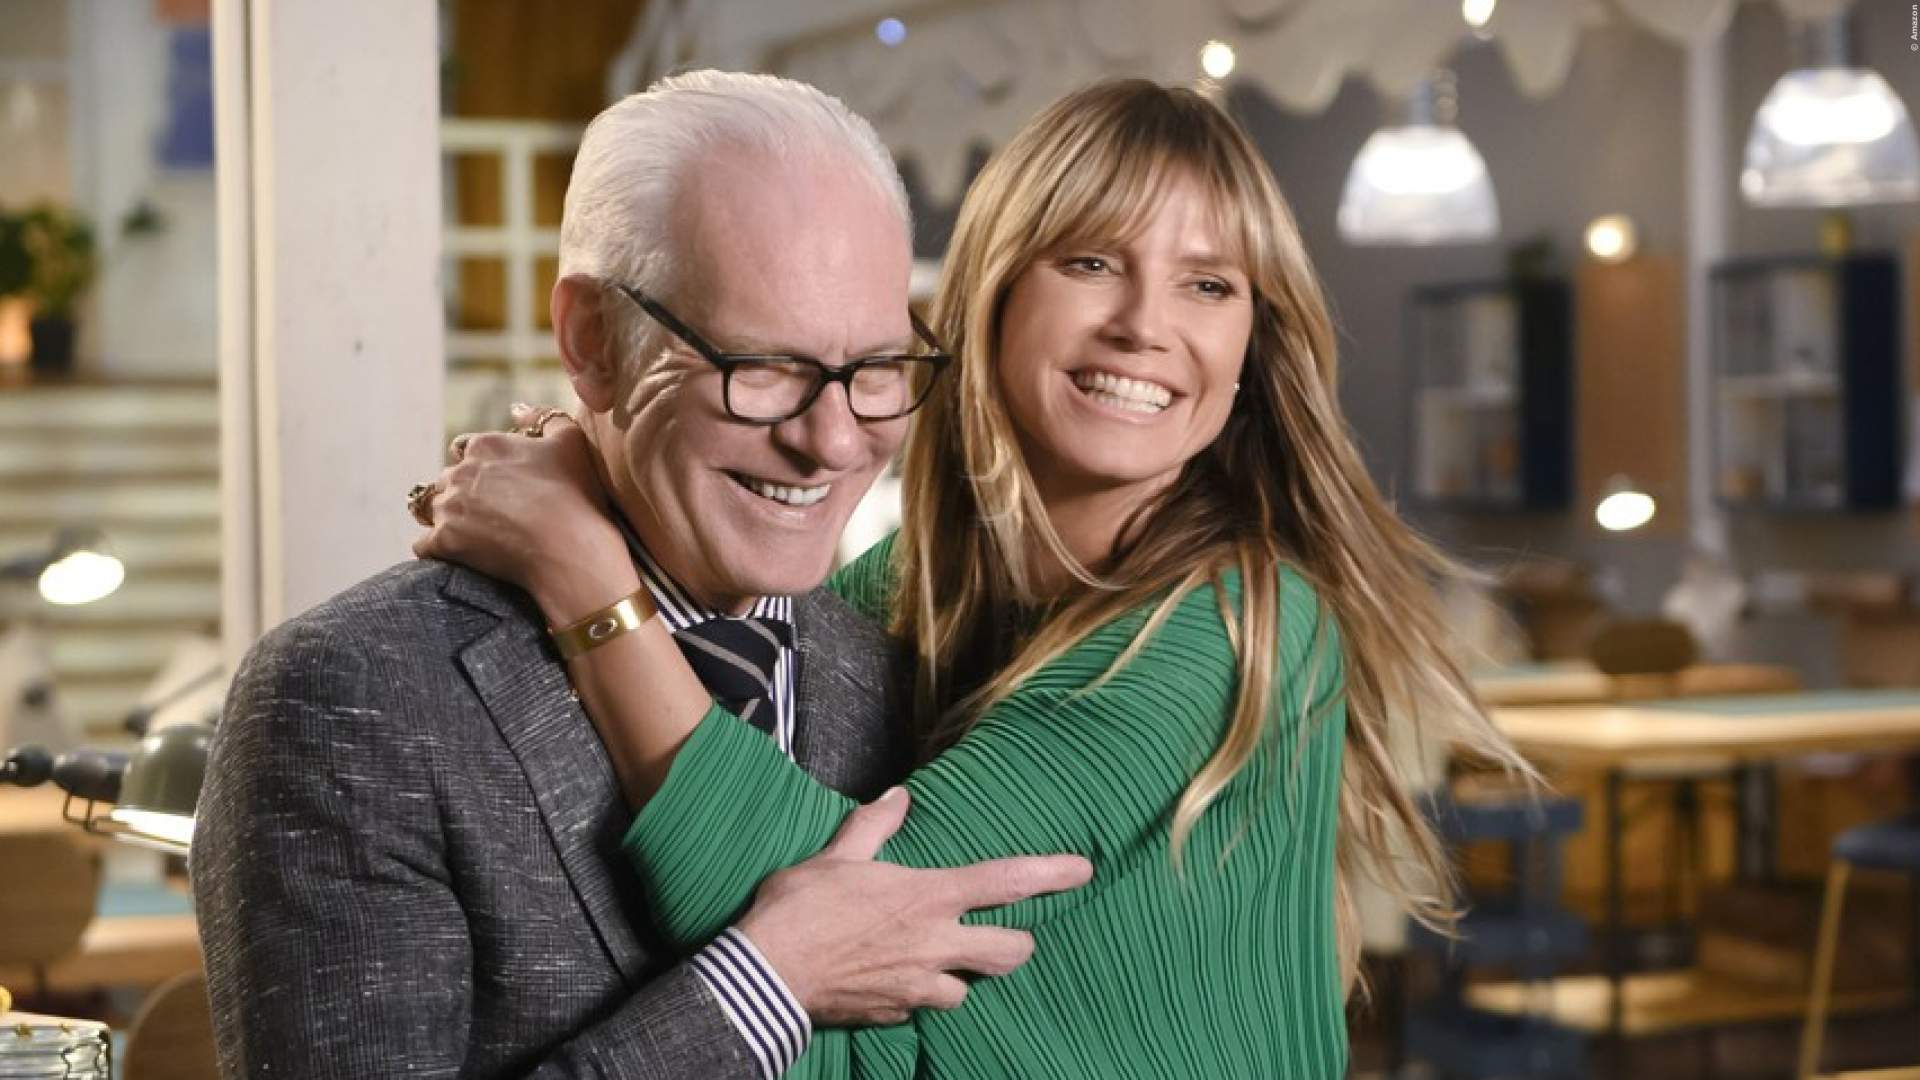 MAKING THE CUT: Erster Trailer zur Amazon-Show mit Heidi Klum